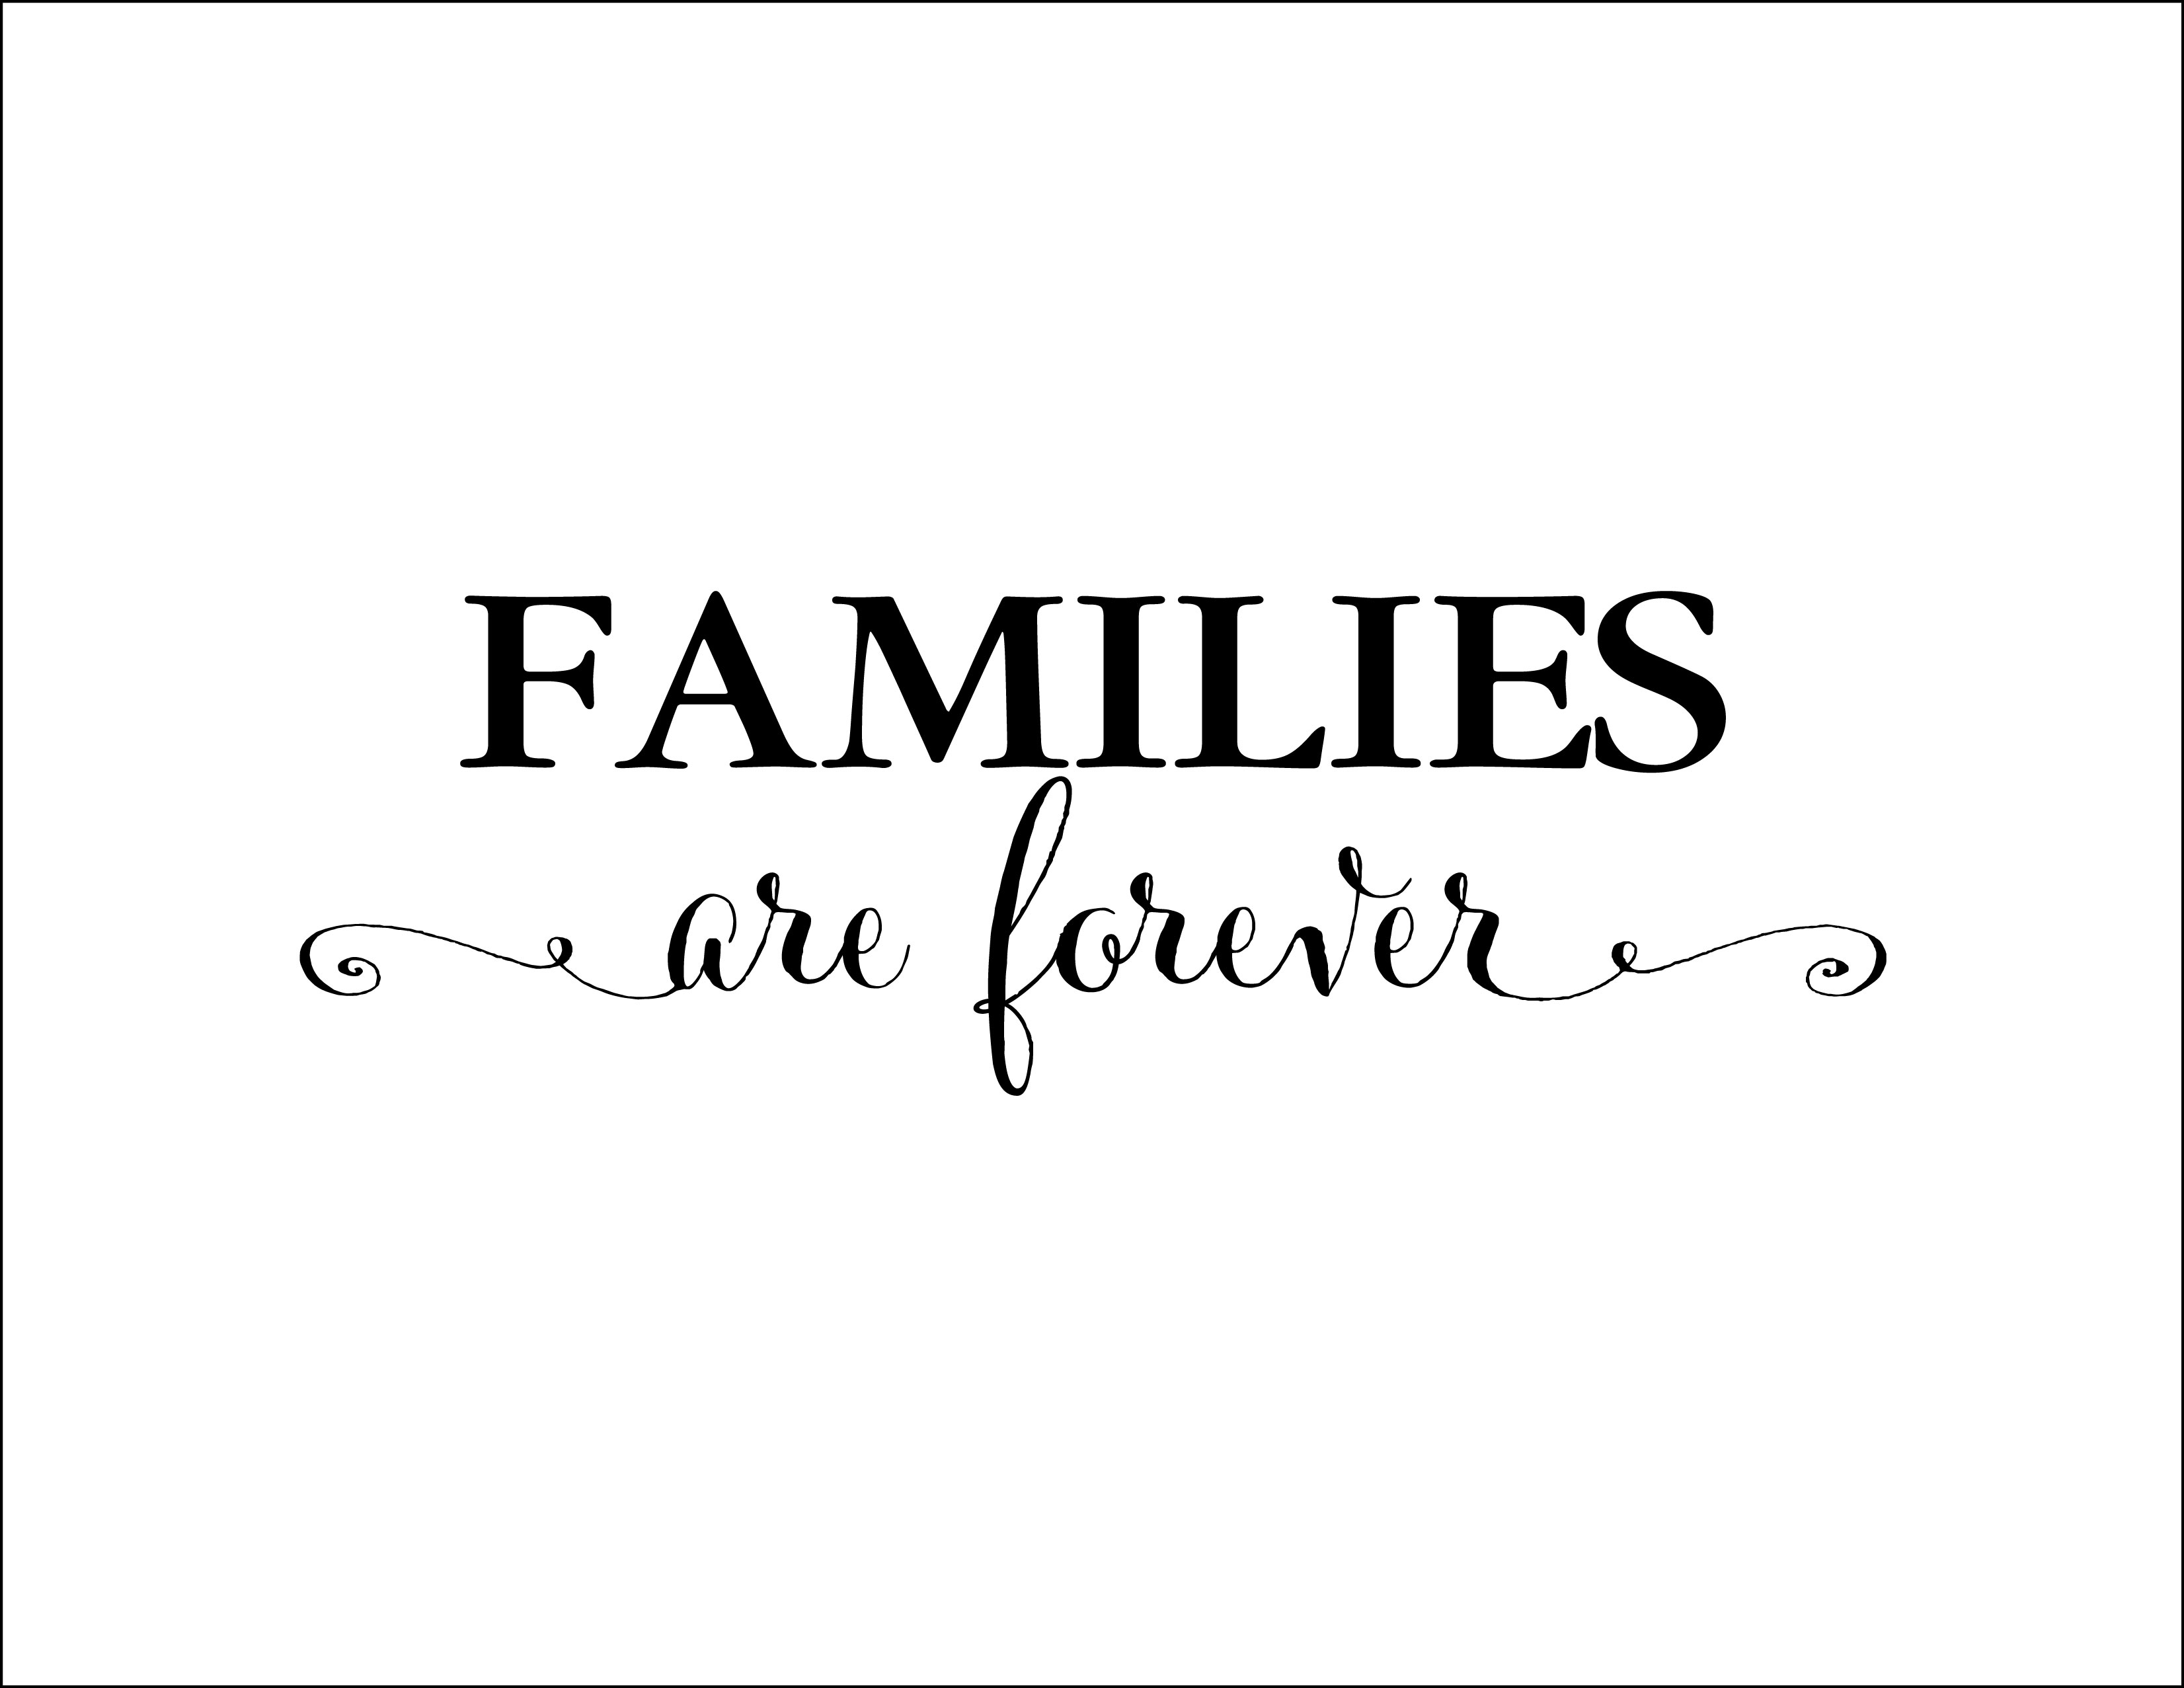 families are forever vinyl wall decal family photo wall decal foyer living room entry way. Black Bedroom Furniture Sets. Home Design Ideas